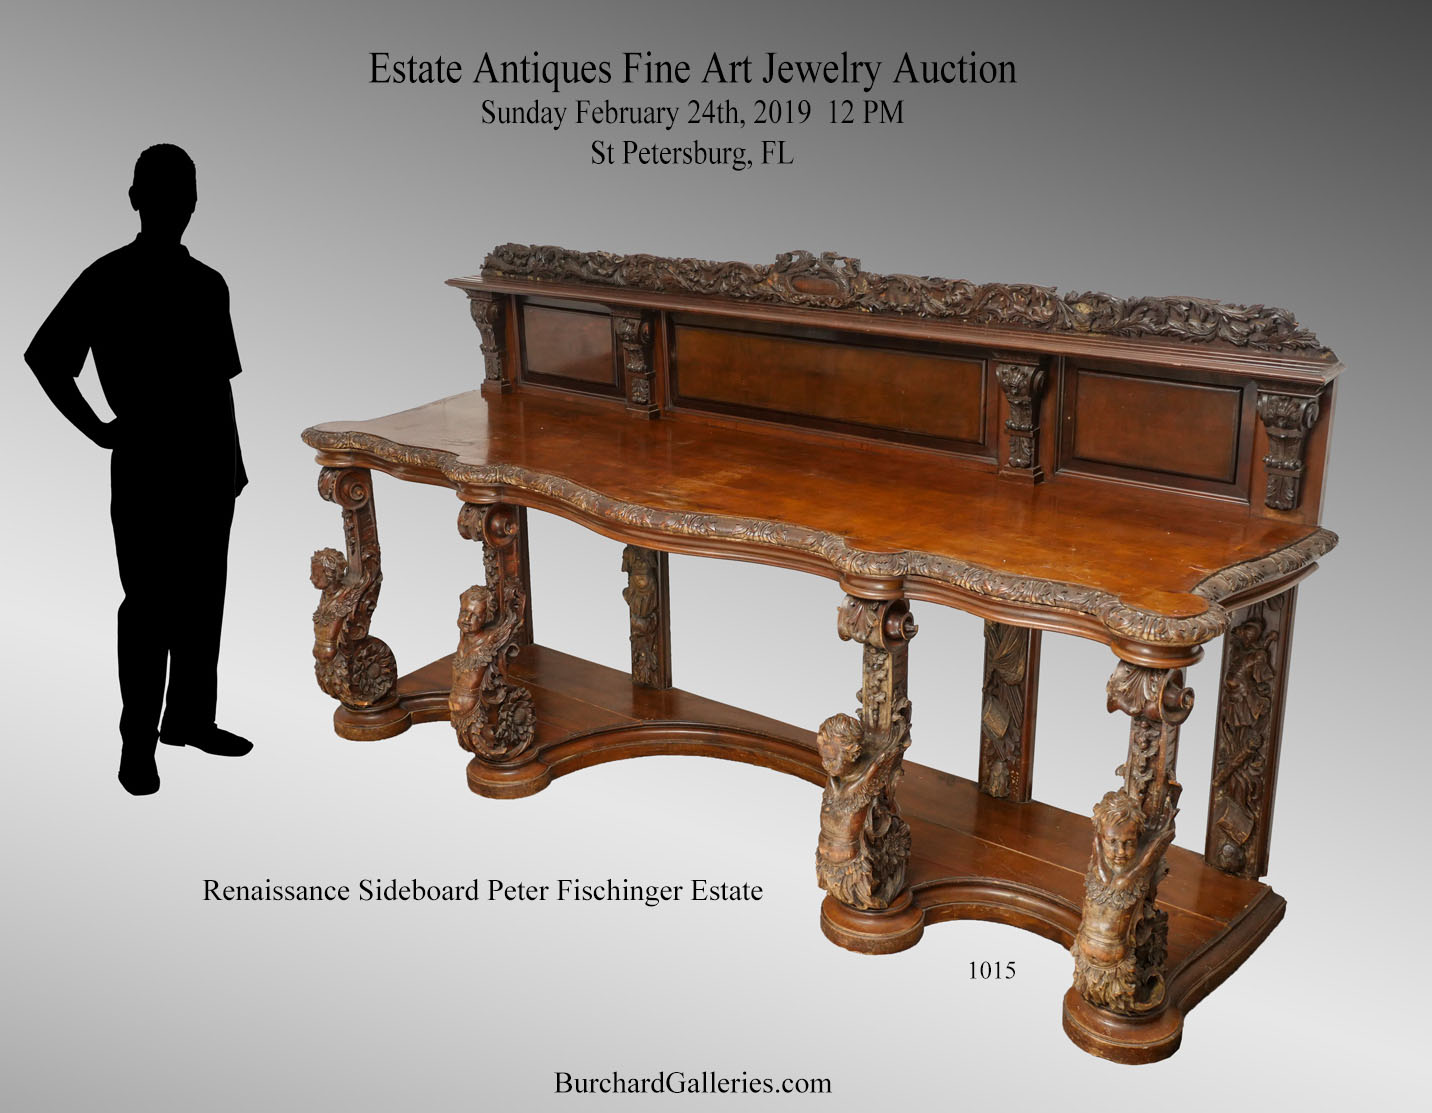 Carved Marble Fischinger Estate Continental Sideboard ... - Antique Auction Calendar - Burchard Galleries